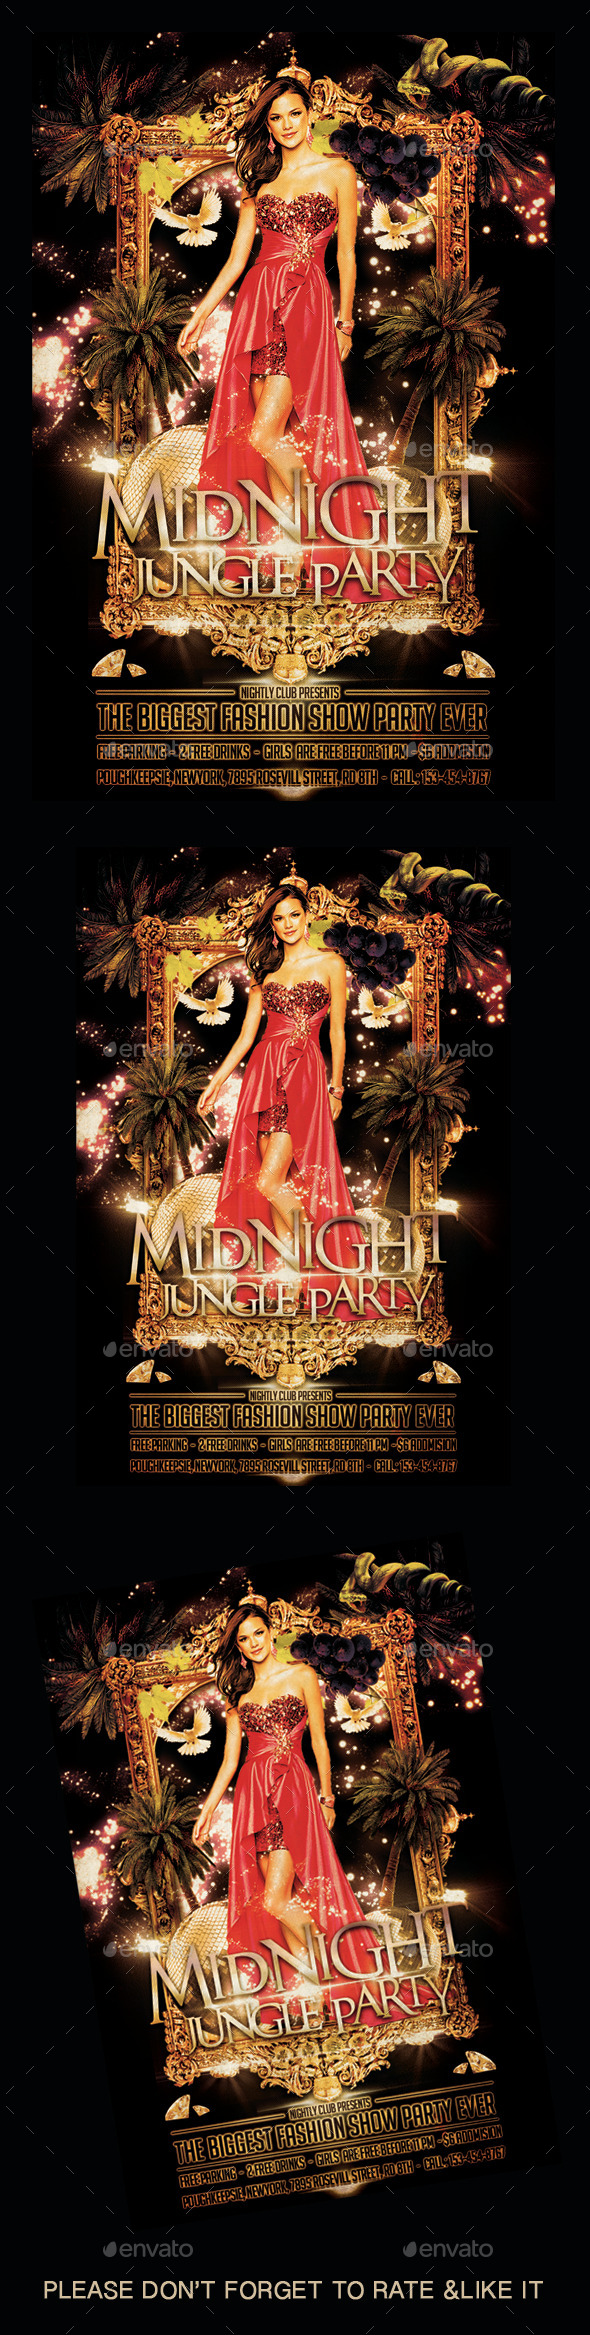 Mid Night Jungle Party Flyer - Flyers Print Templates